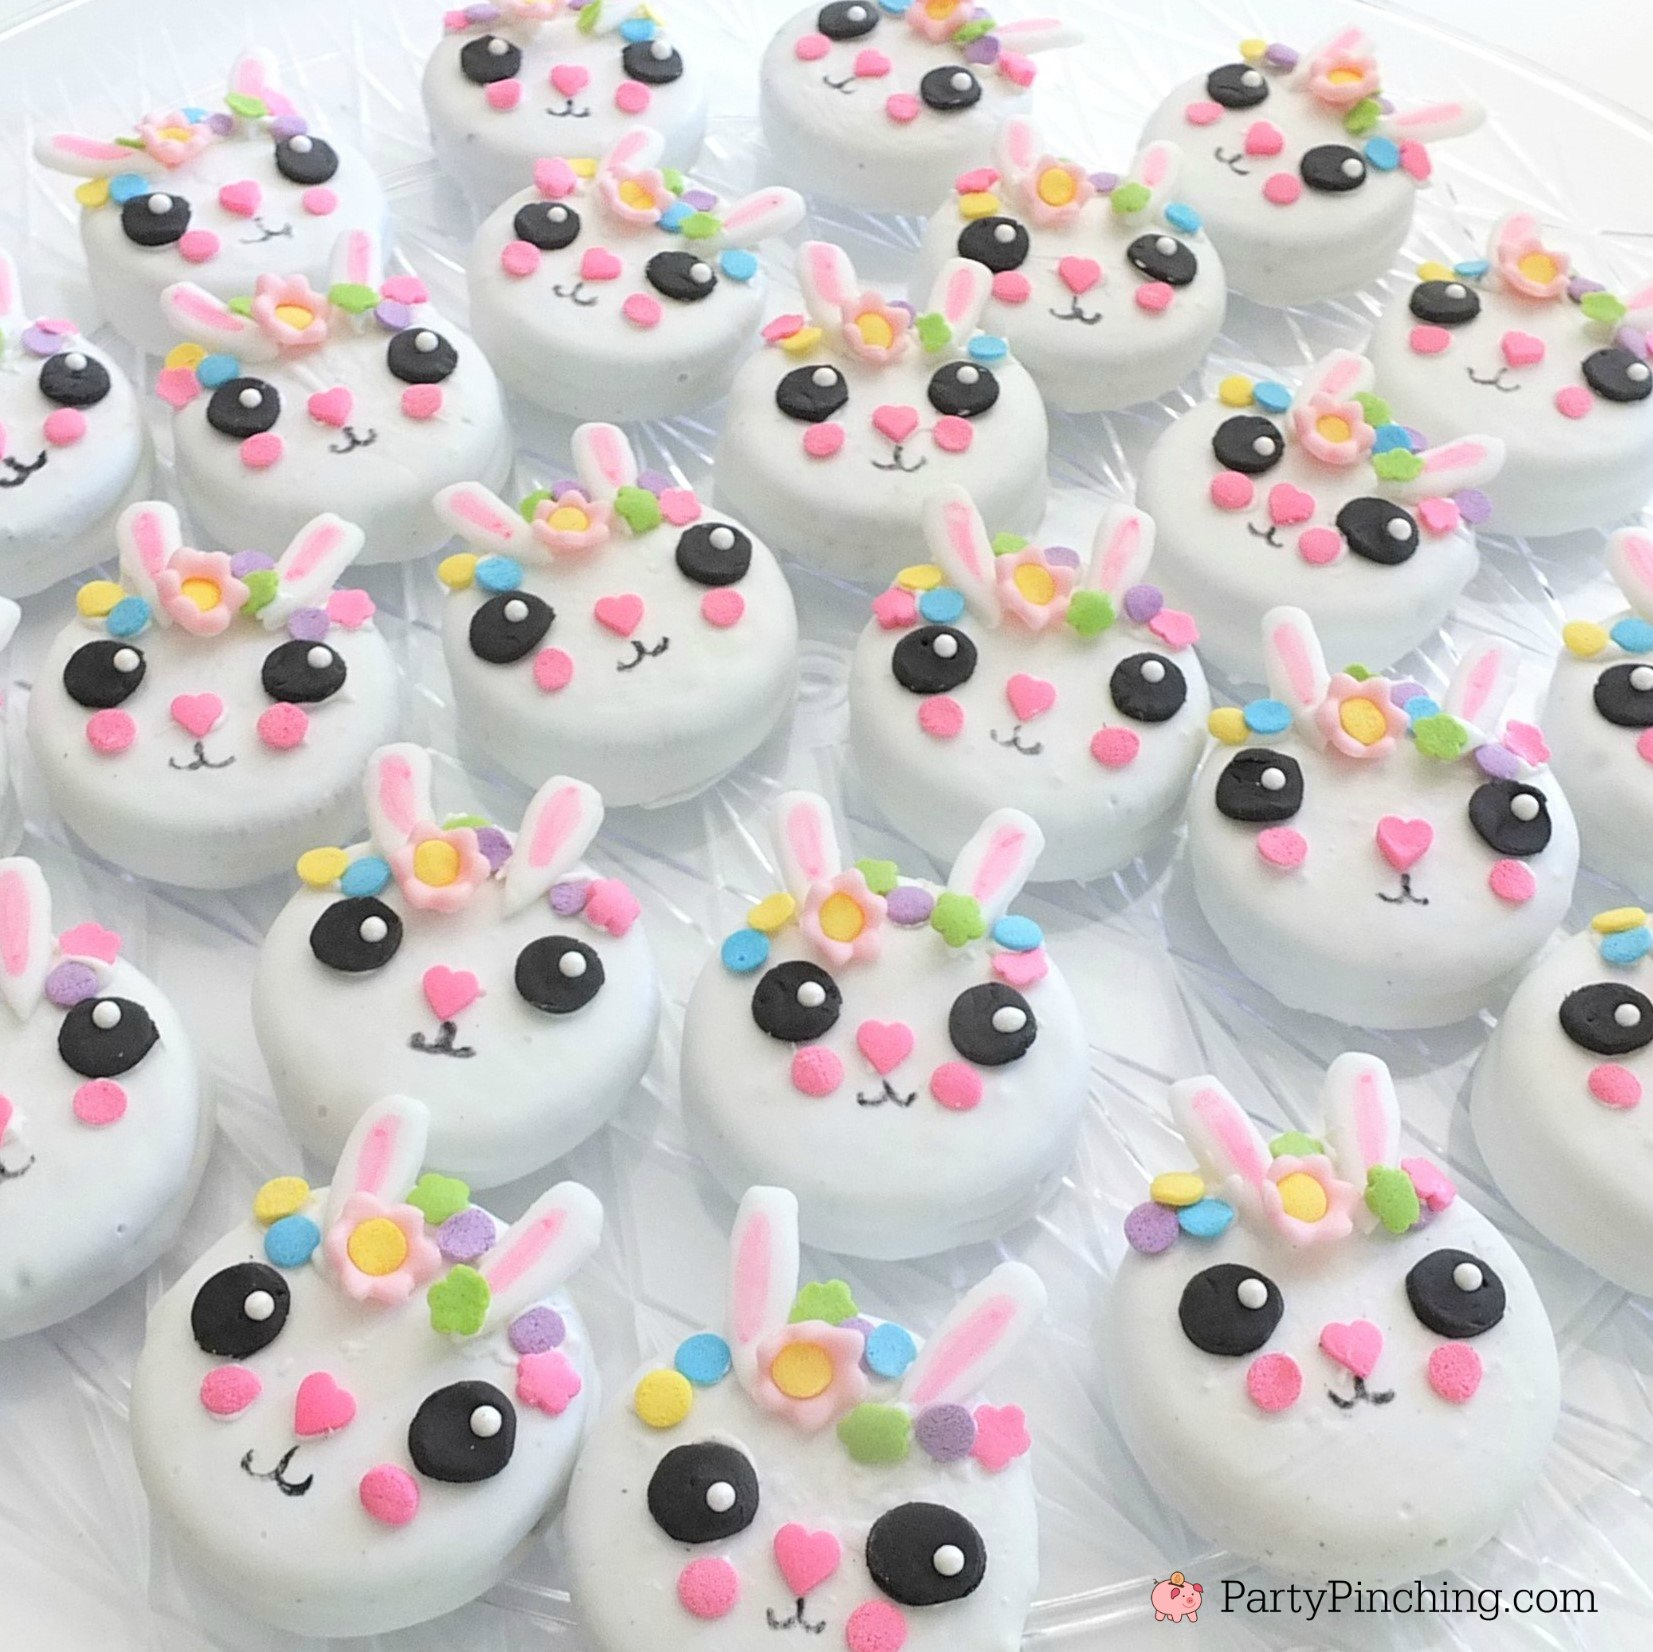 bunny oreos, bunny cookies, bunny cake, bunny cake with flower crown, cute kawaii bunny cake, fun easy bunny cake for Easter, sweet treats for kids, adorable rabbit cake, bunny cake with floral buttercream fondant, oreo bunny cookies, candy coated easter bunny cookies flower crown